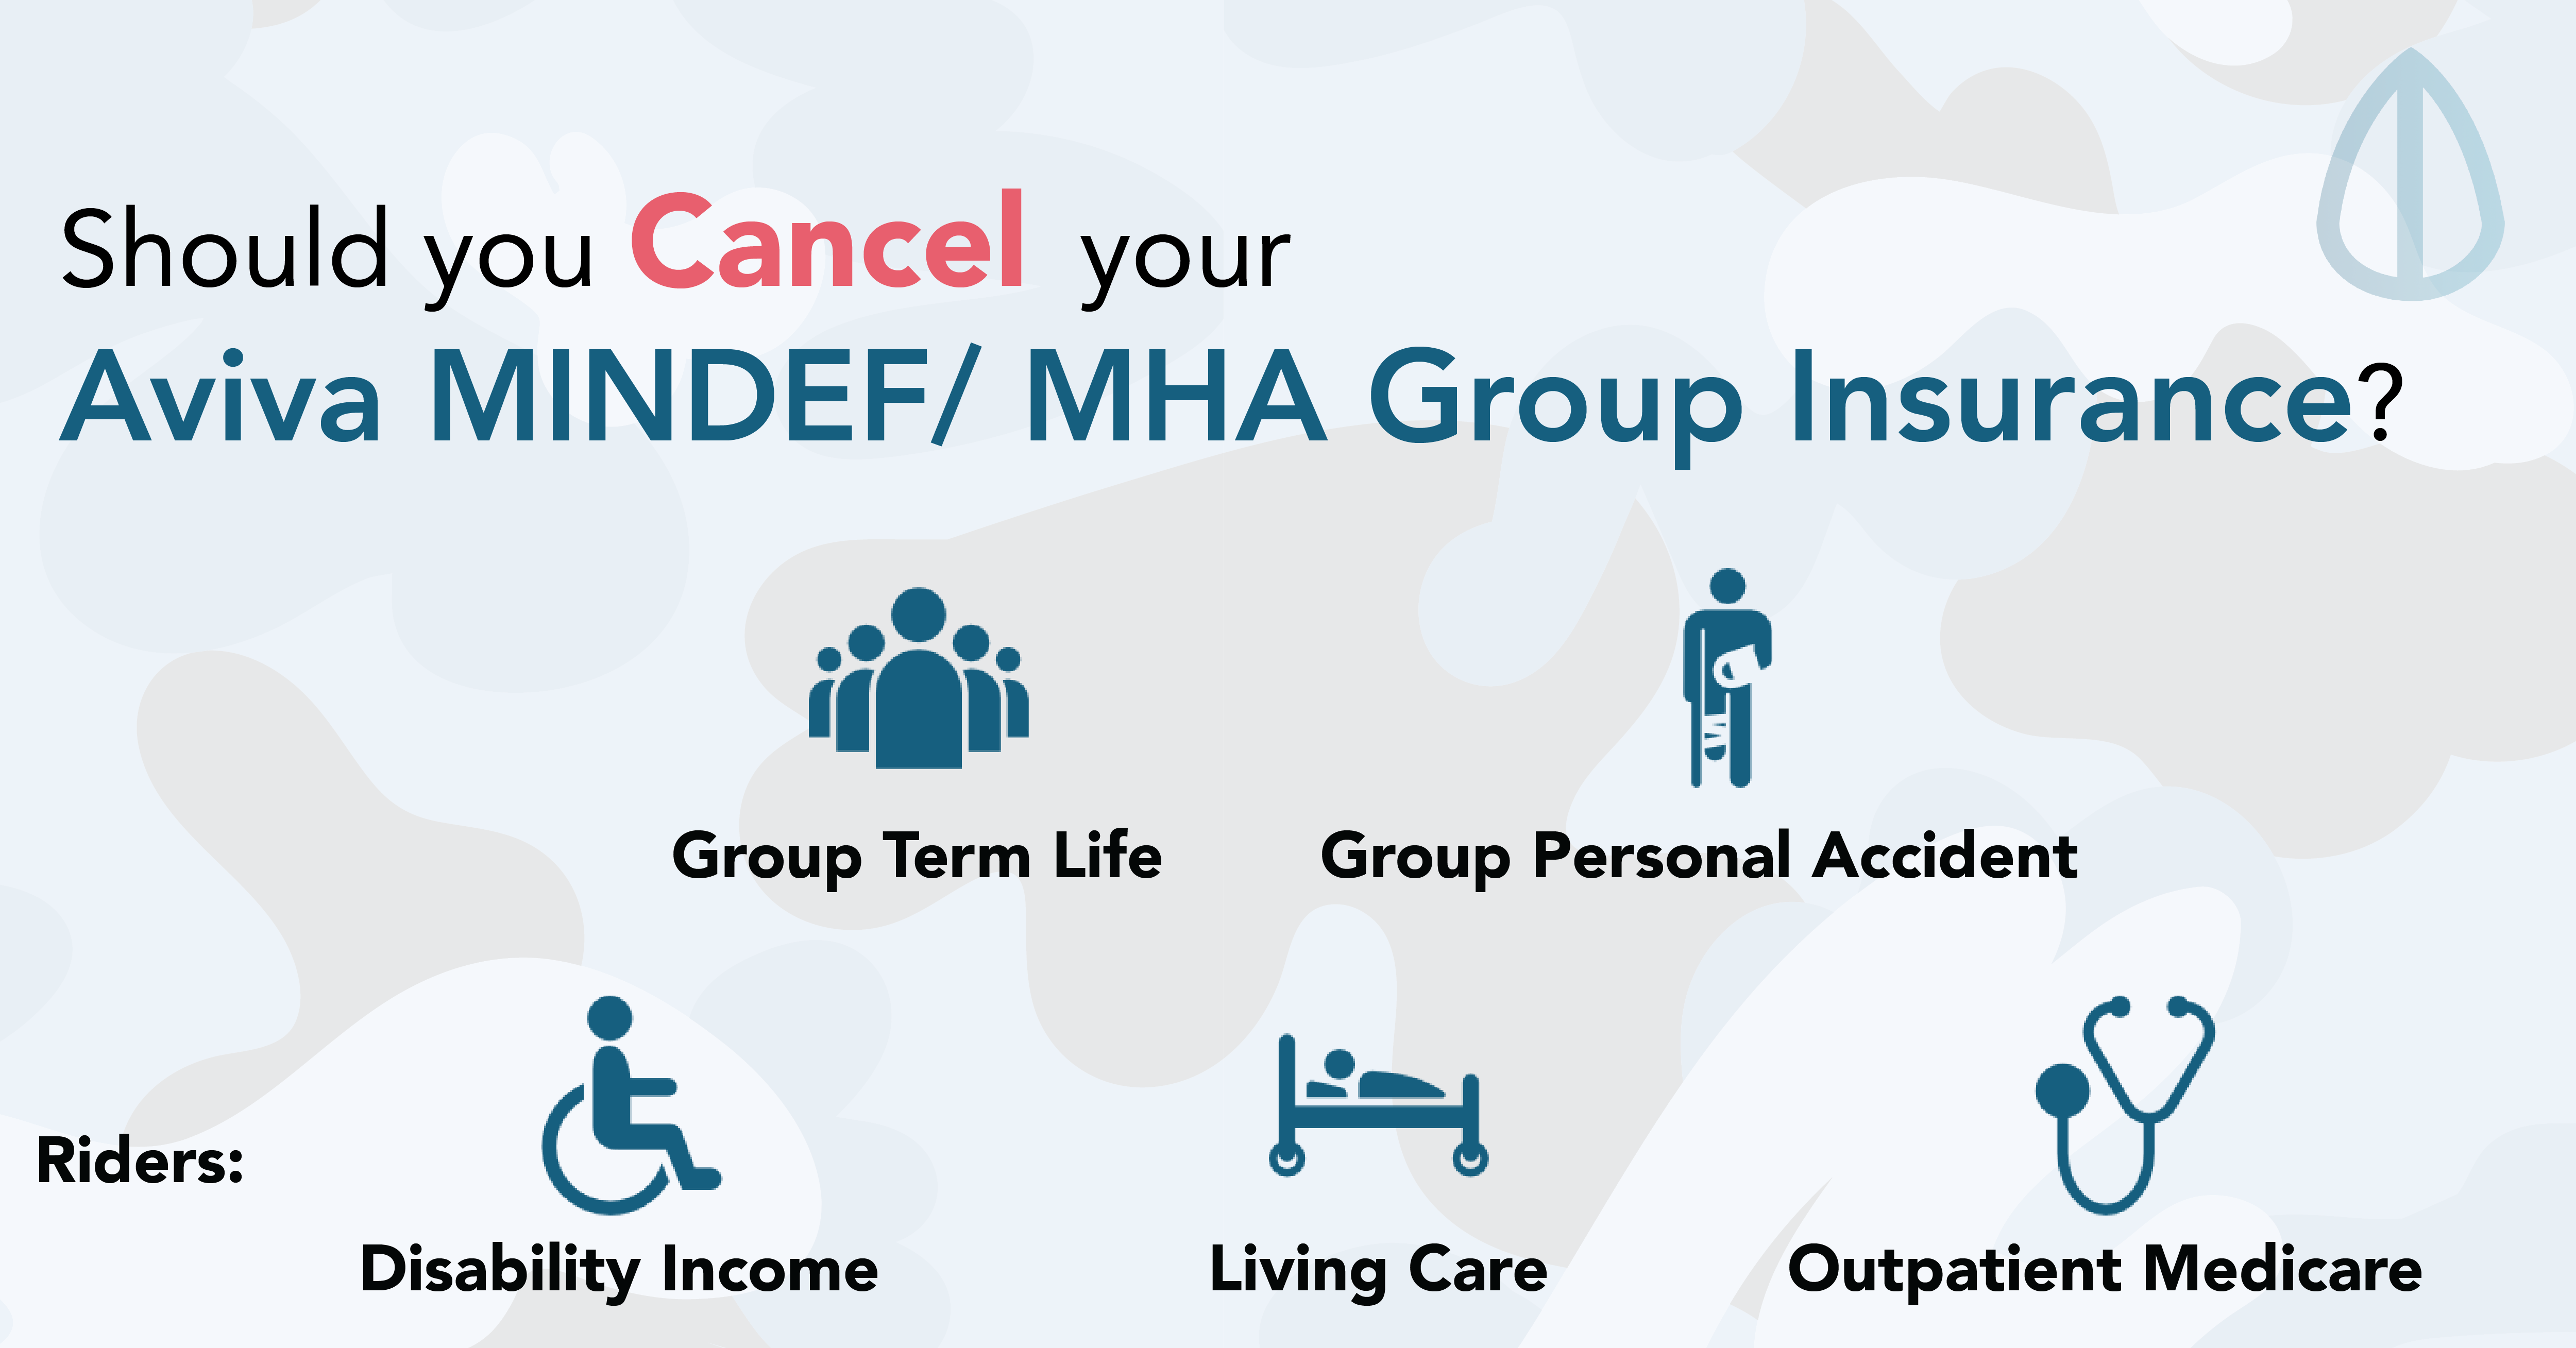 Should You Cancel Your Aviva MINDEF/MHA Group Insurance After You ORD?